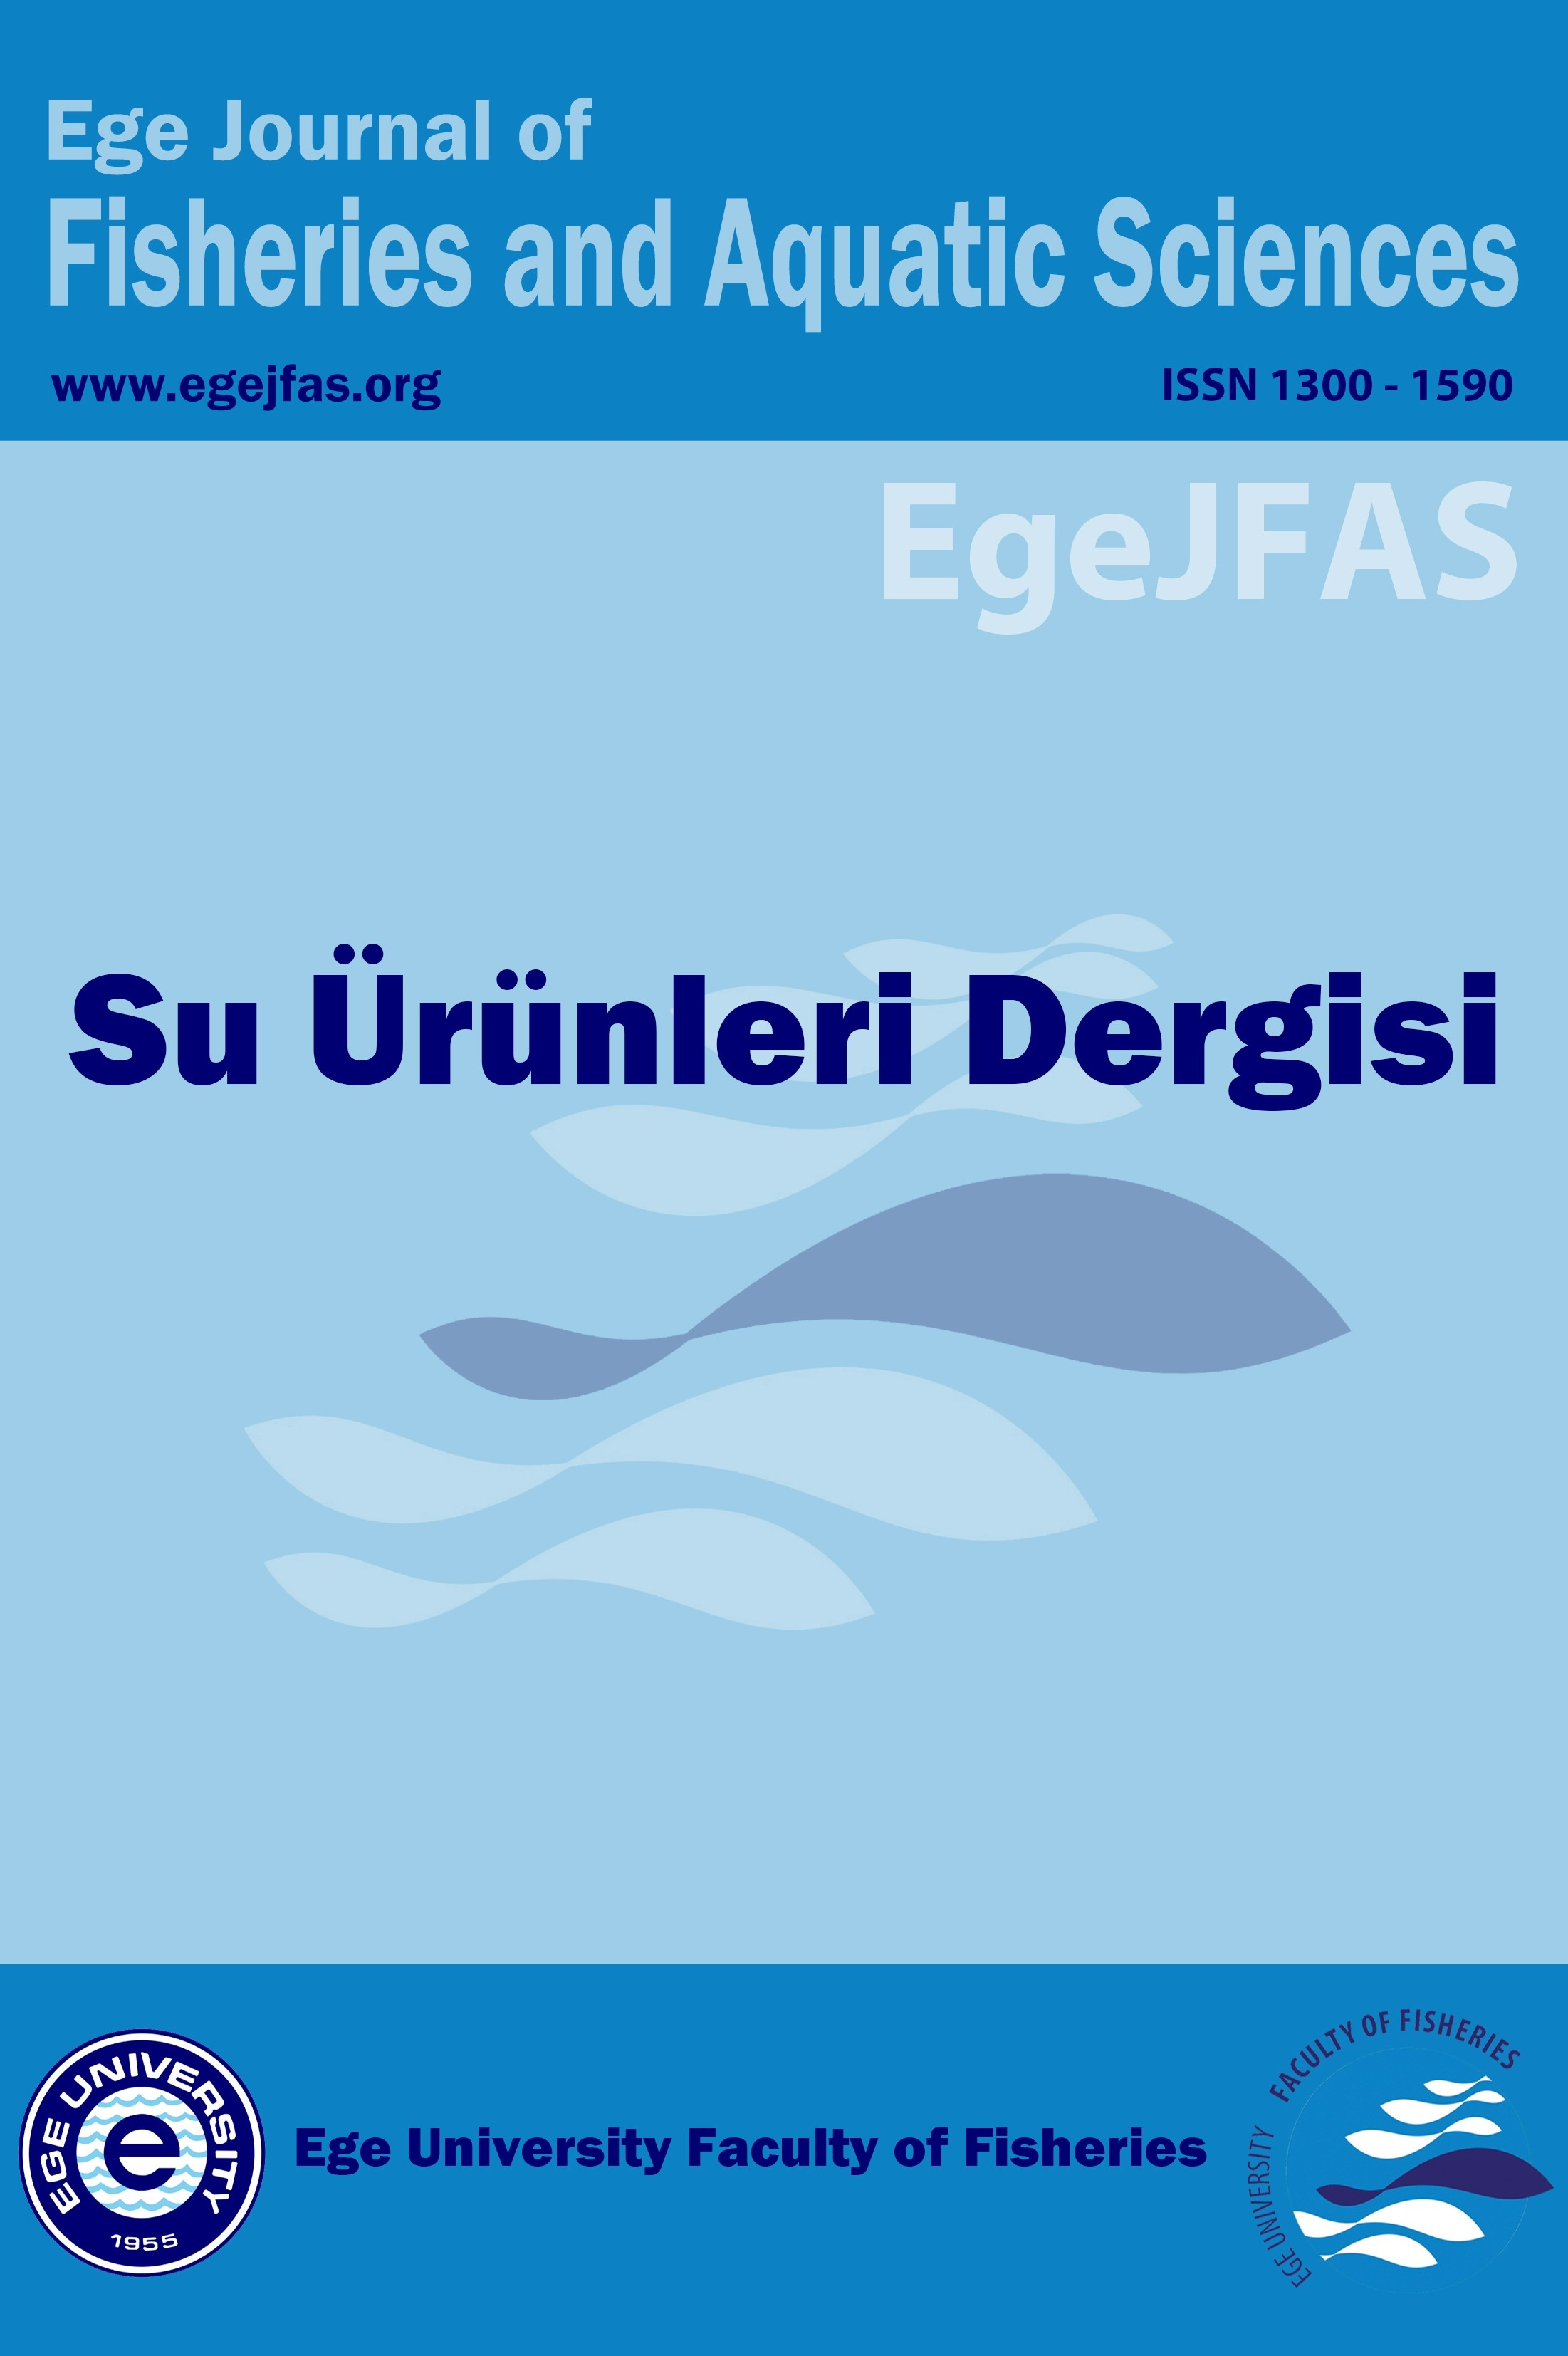 Ege Journal of Fisheries and Aquatic Sciences